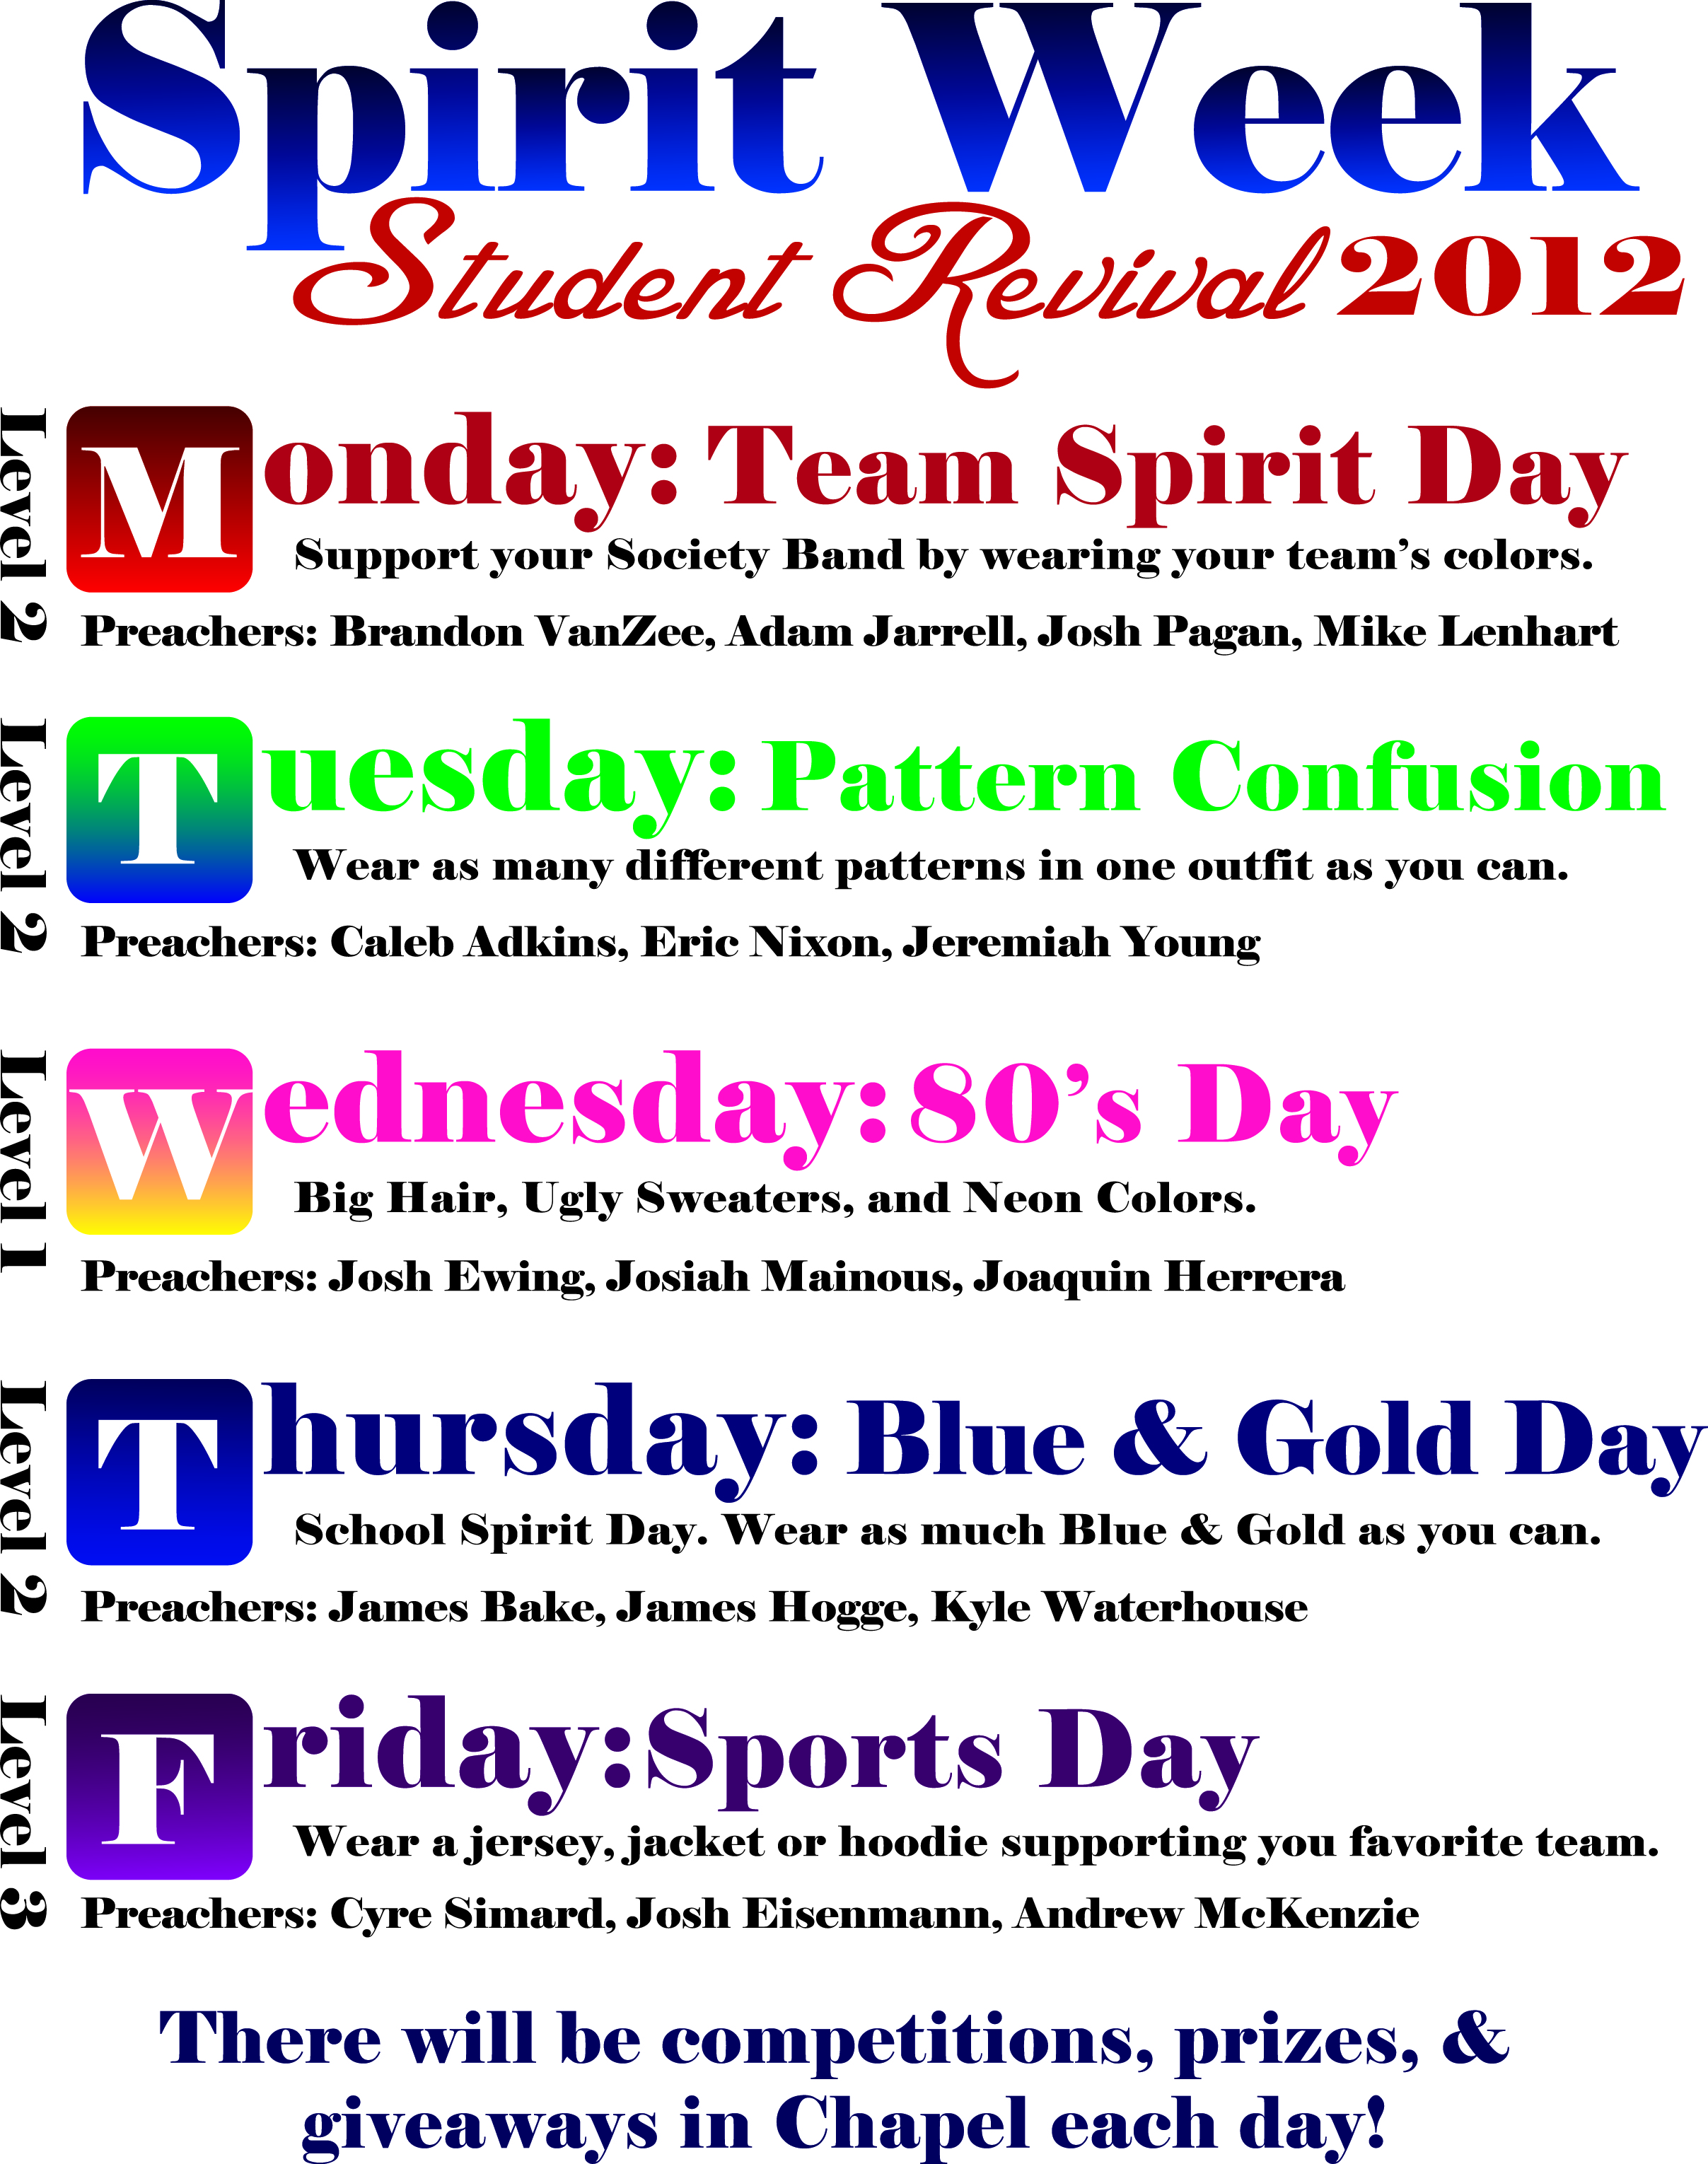 Quotes about Spirit week (13 quotes)